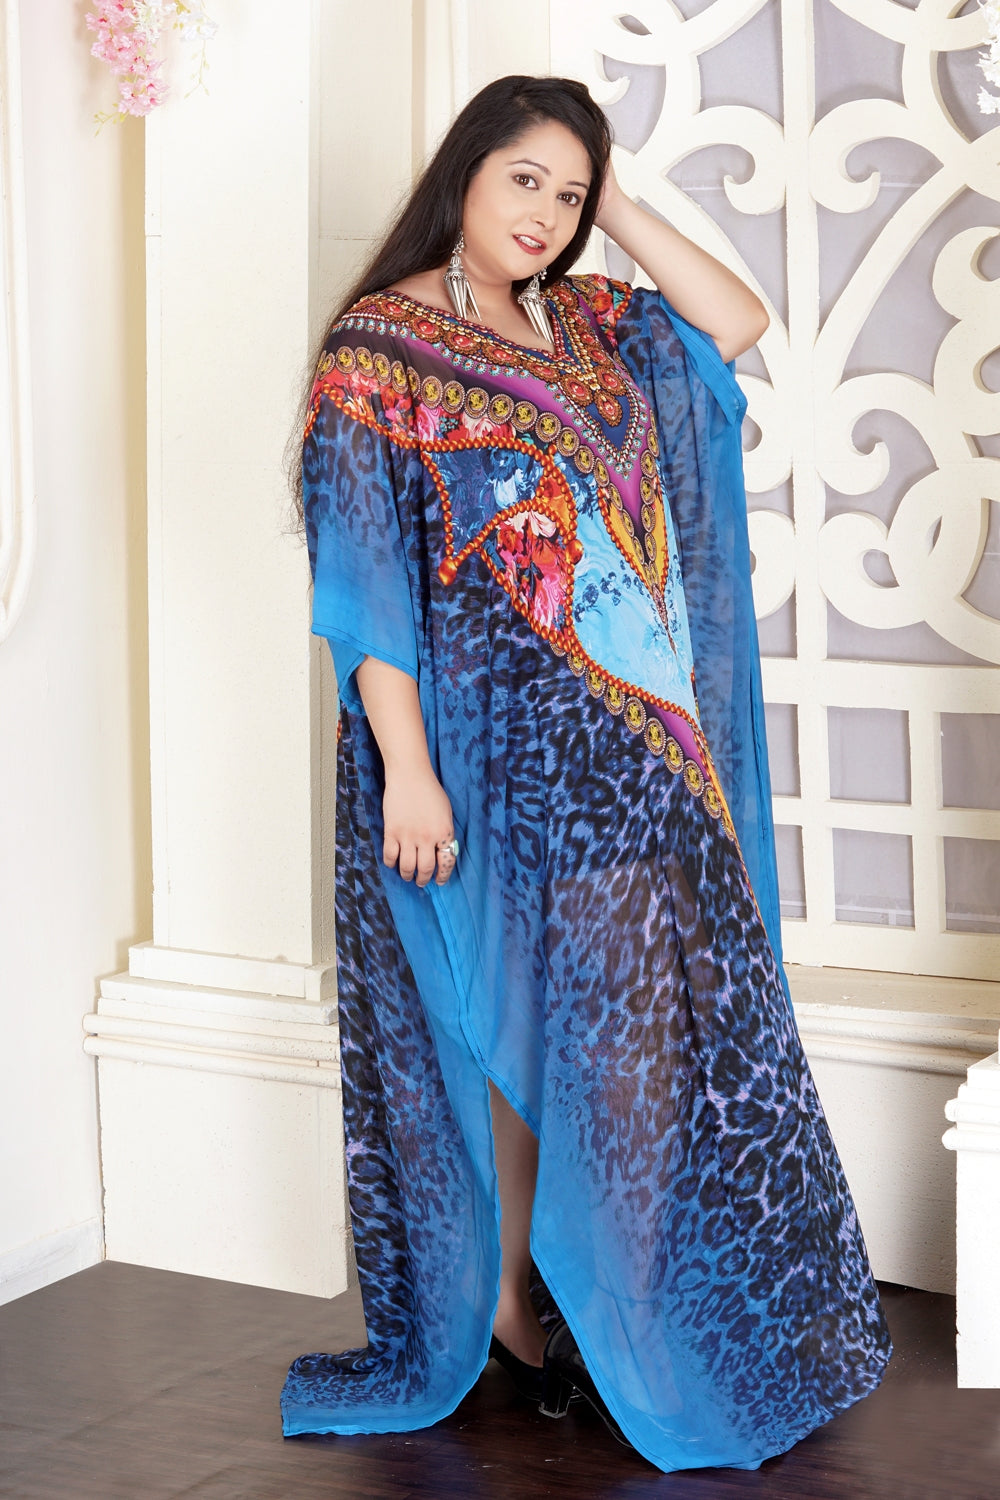 Leopard skin patches drawn on Blue colored Silk Kaftan with artistic patterns on cheap kaftan - Silk kaftan